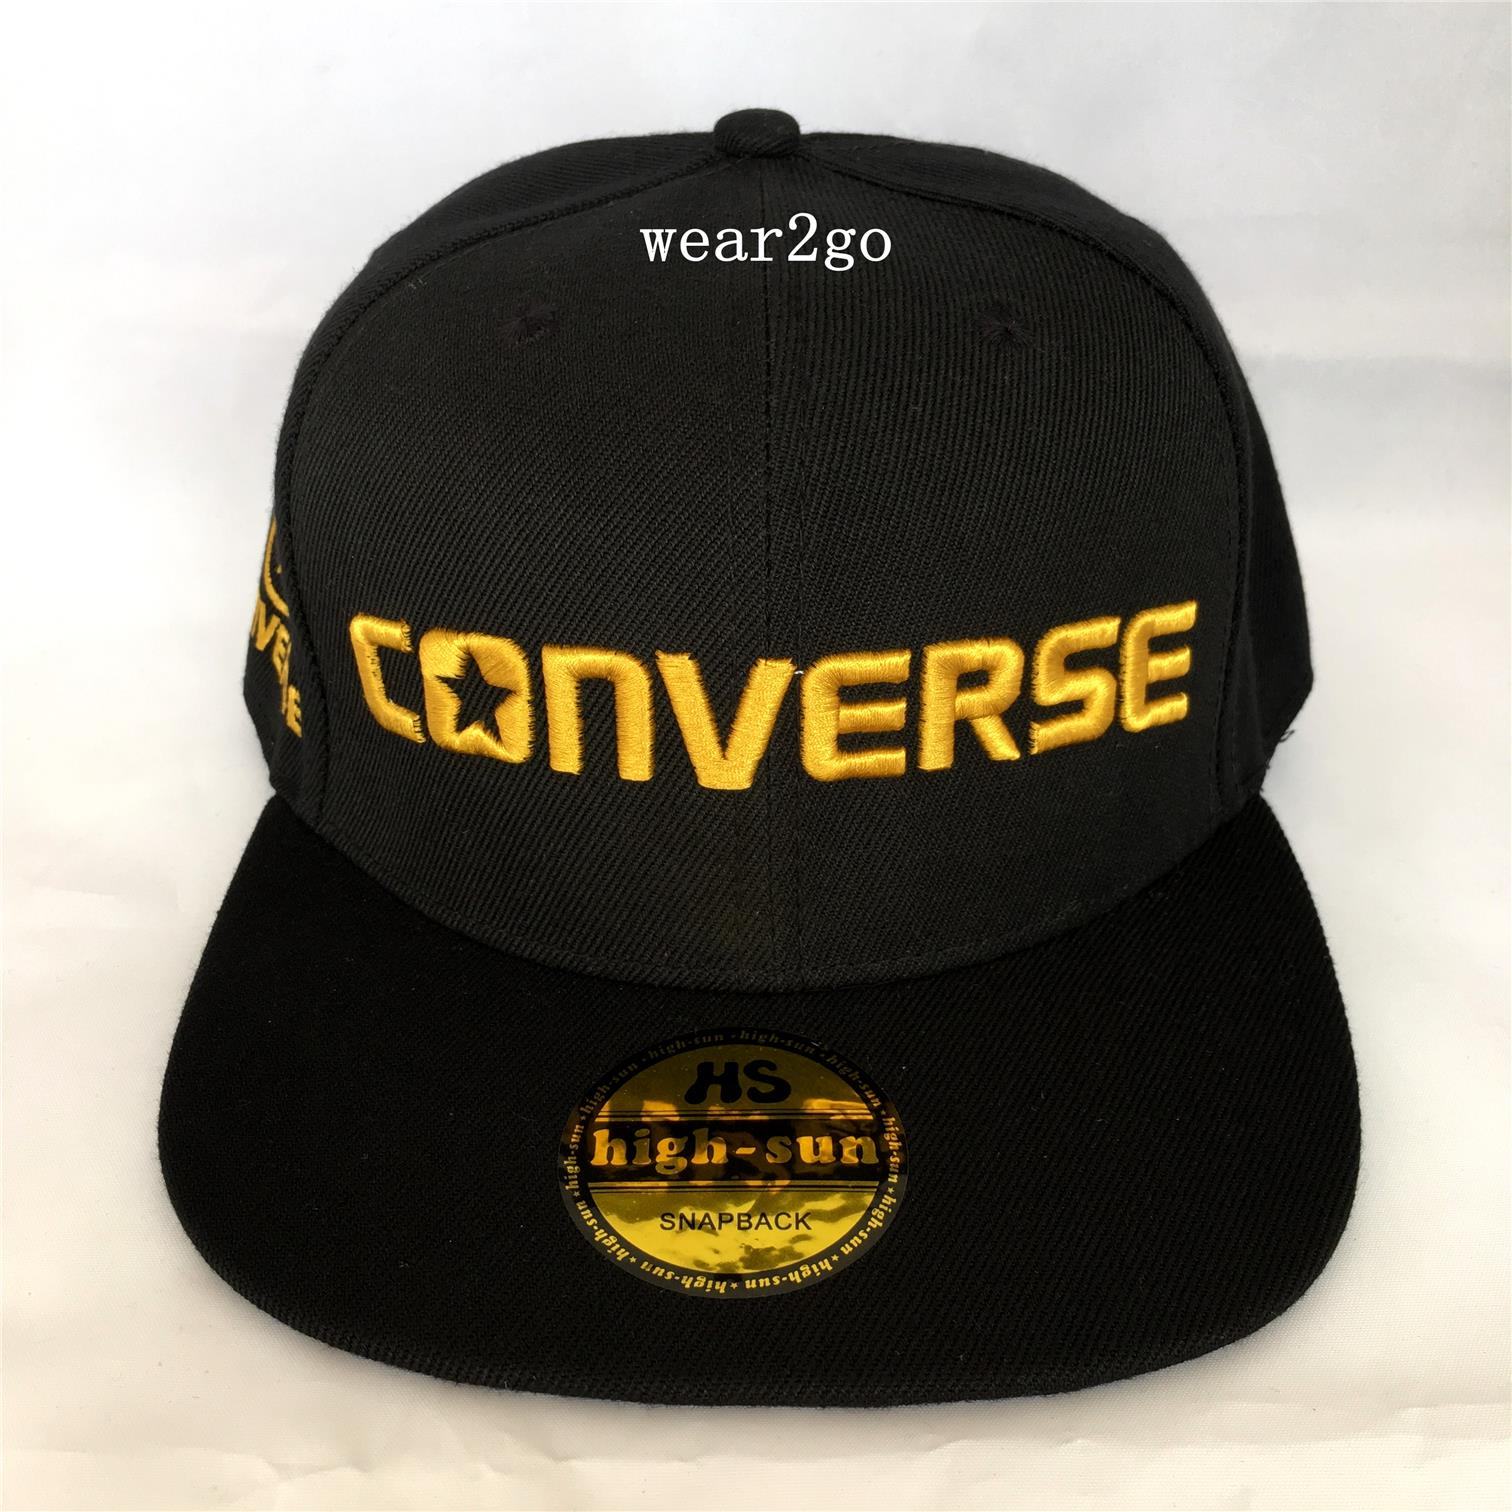 CONVERSE (4) Snapback Cap in Black C (end 5 17 2018 3 15 PM) 72827631282